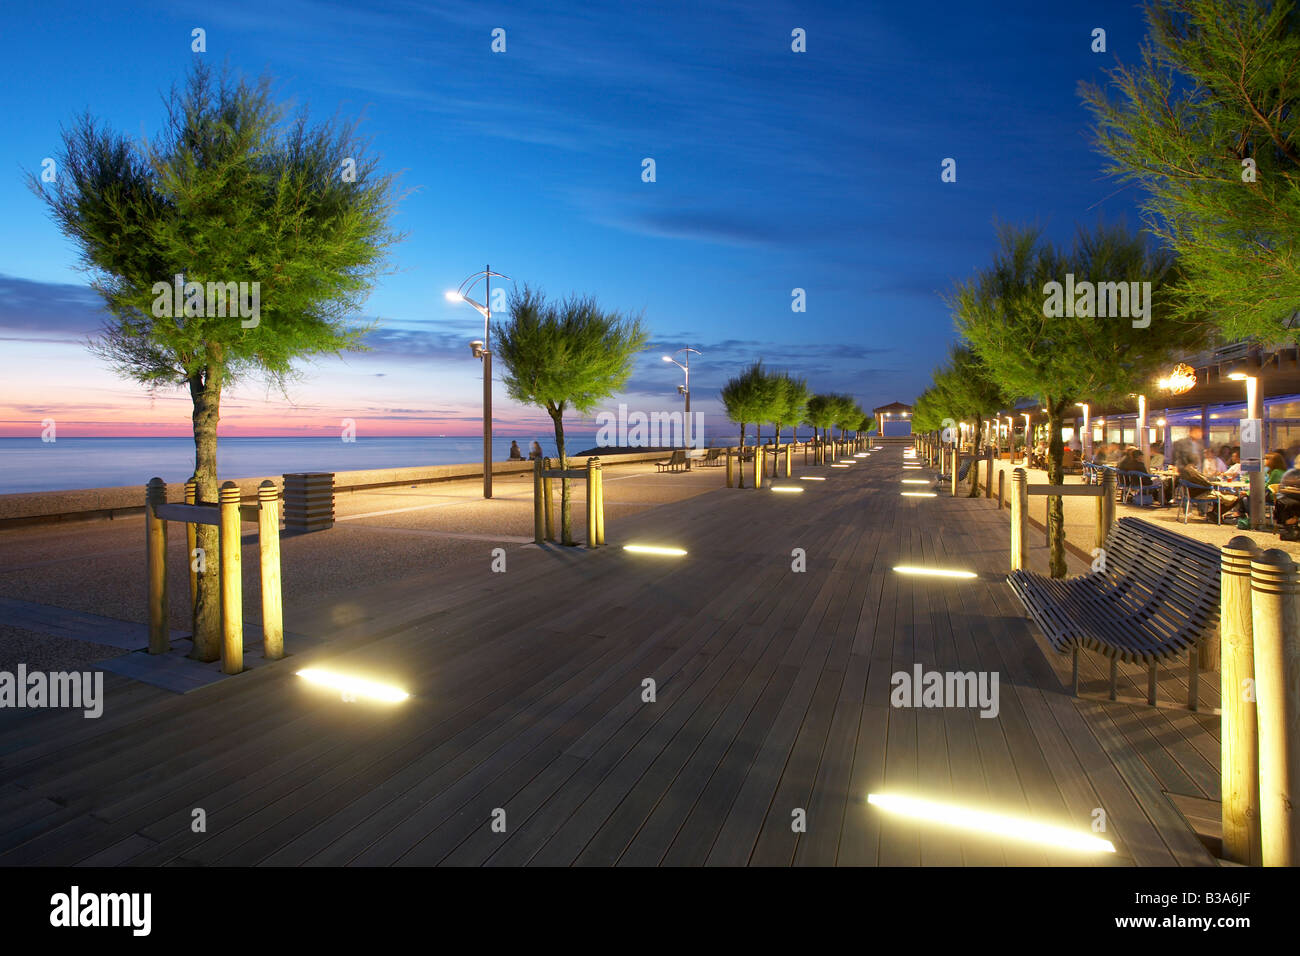 Chambre d Amour esplanade by night in Anglet France - Stock Image